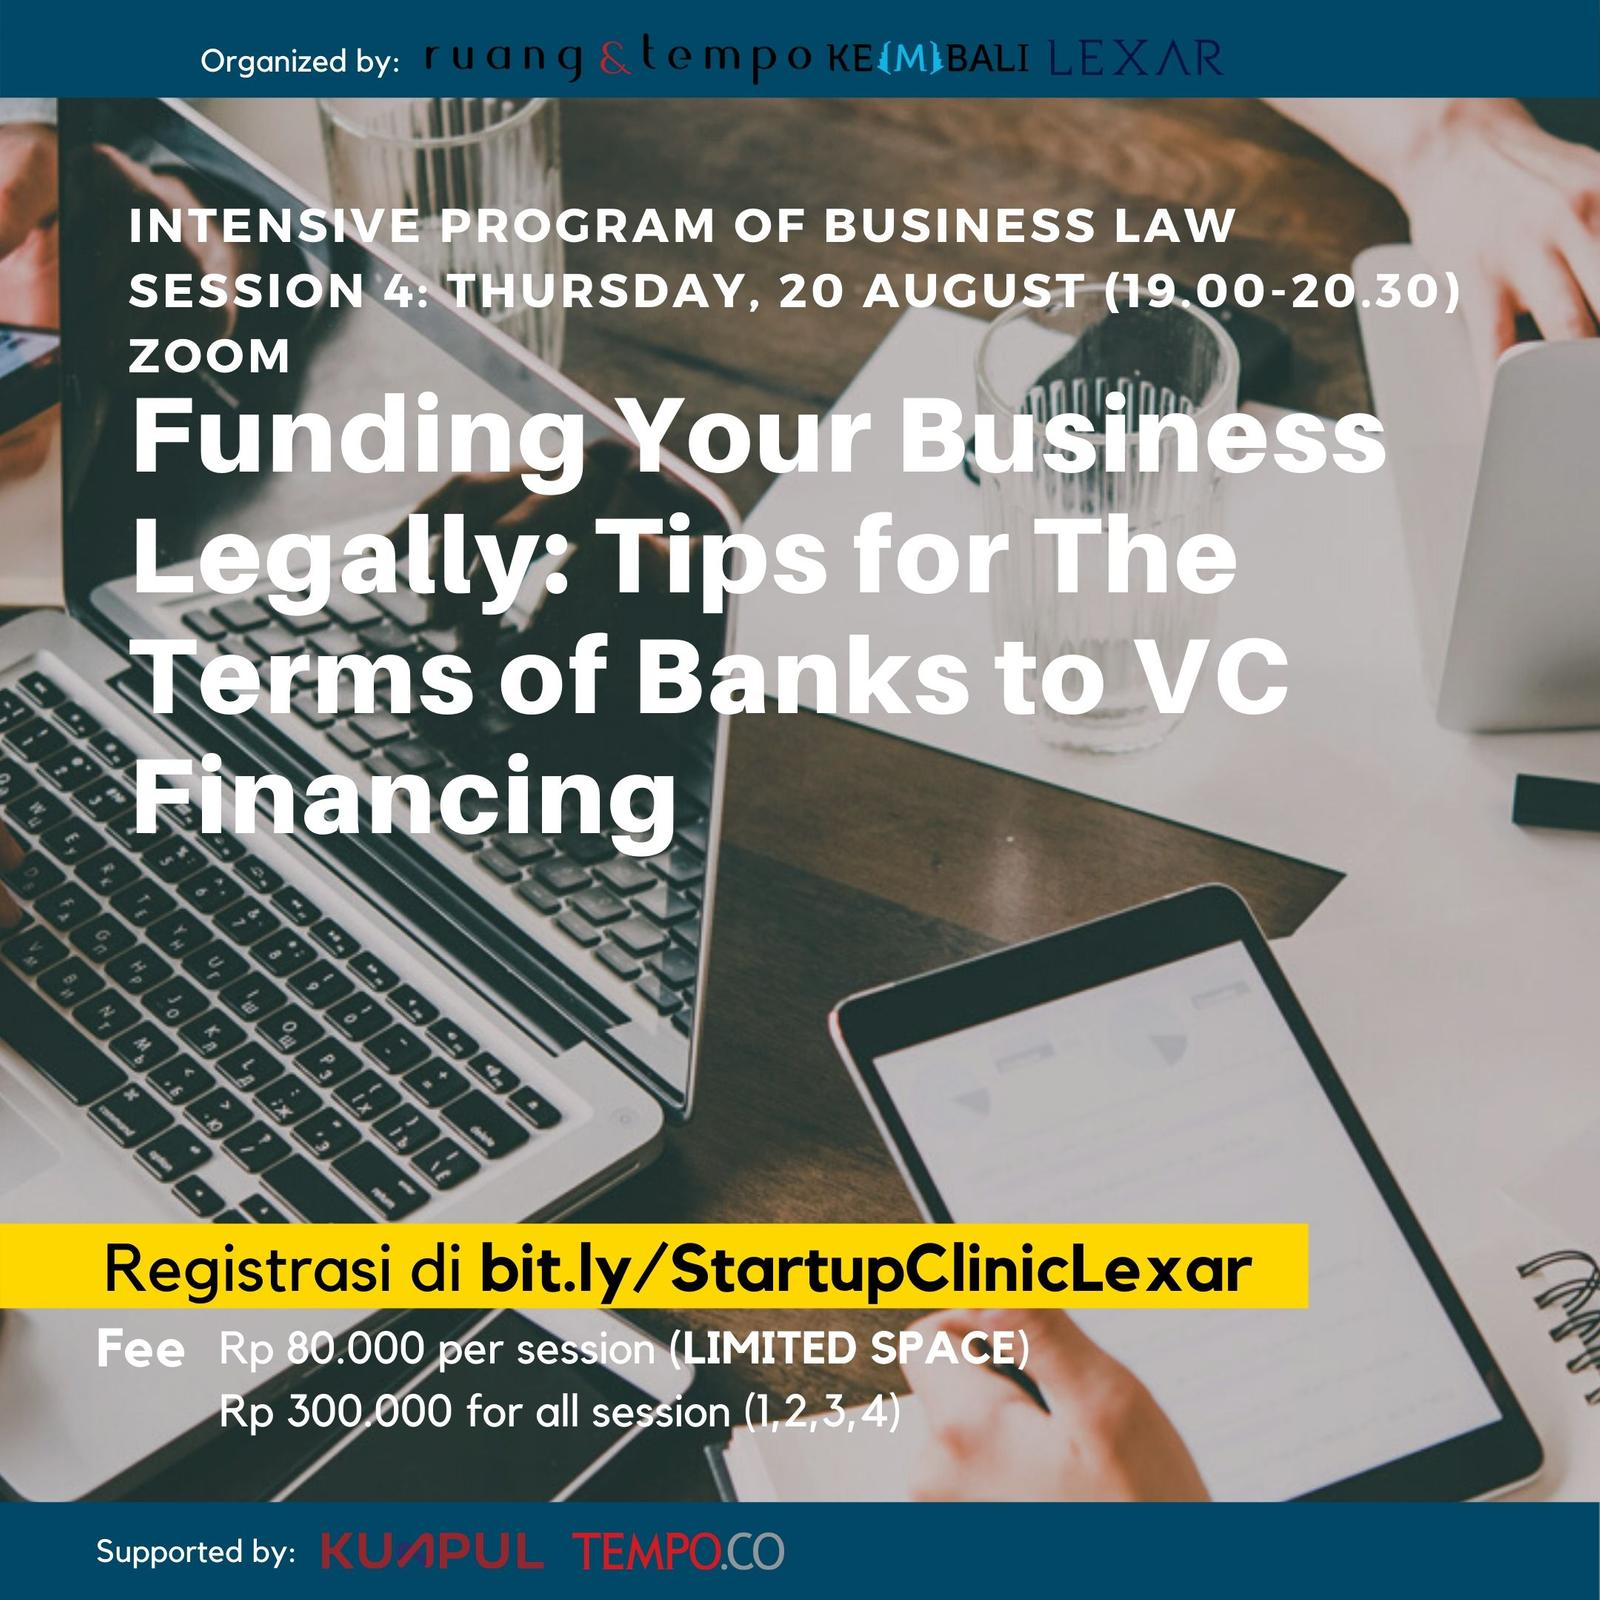 Startup Clinic x Lexar: Funding Your Business Legally: Tips for The Terms of Banks to VC Financing